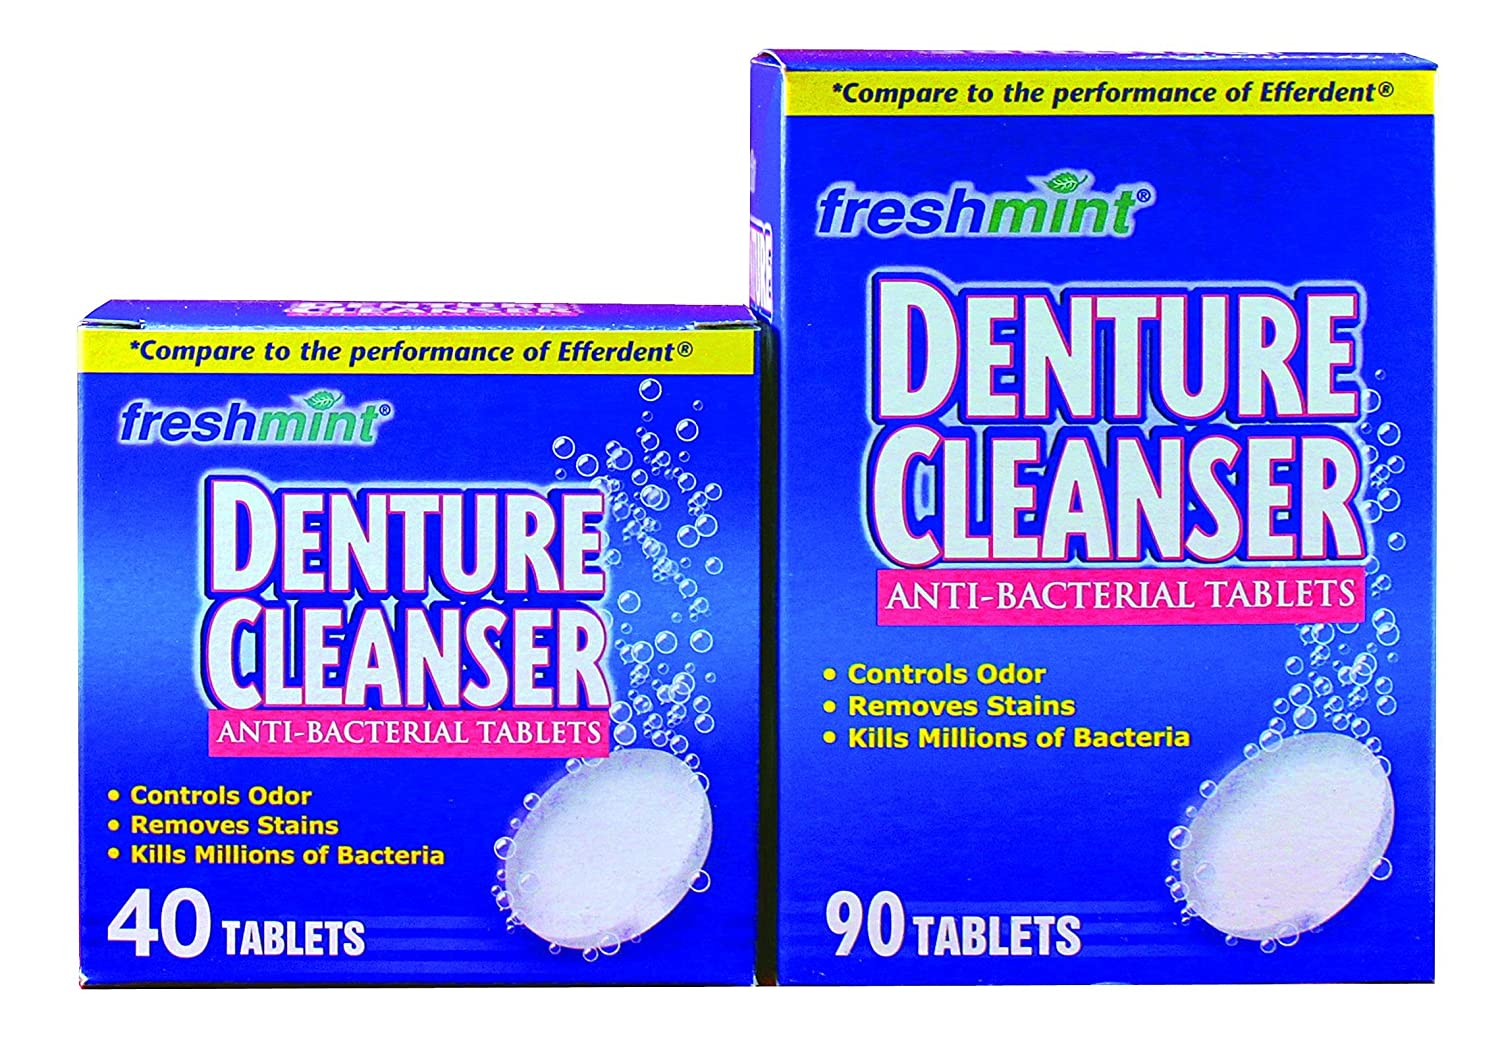 NEWDENT90BX - Freshmint Denture Albuquerque Mall Low price Cleanser Count Mint Tablets 90